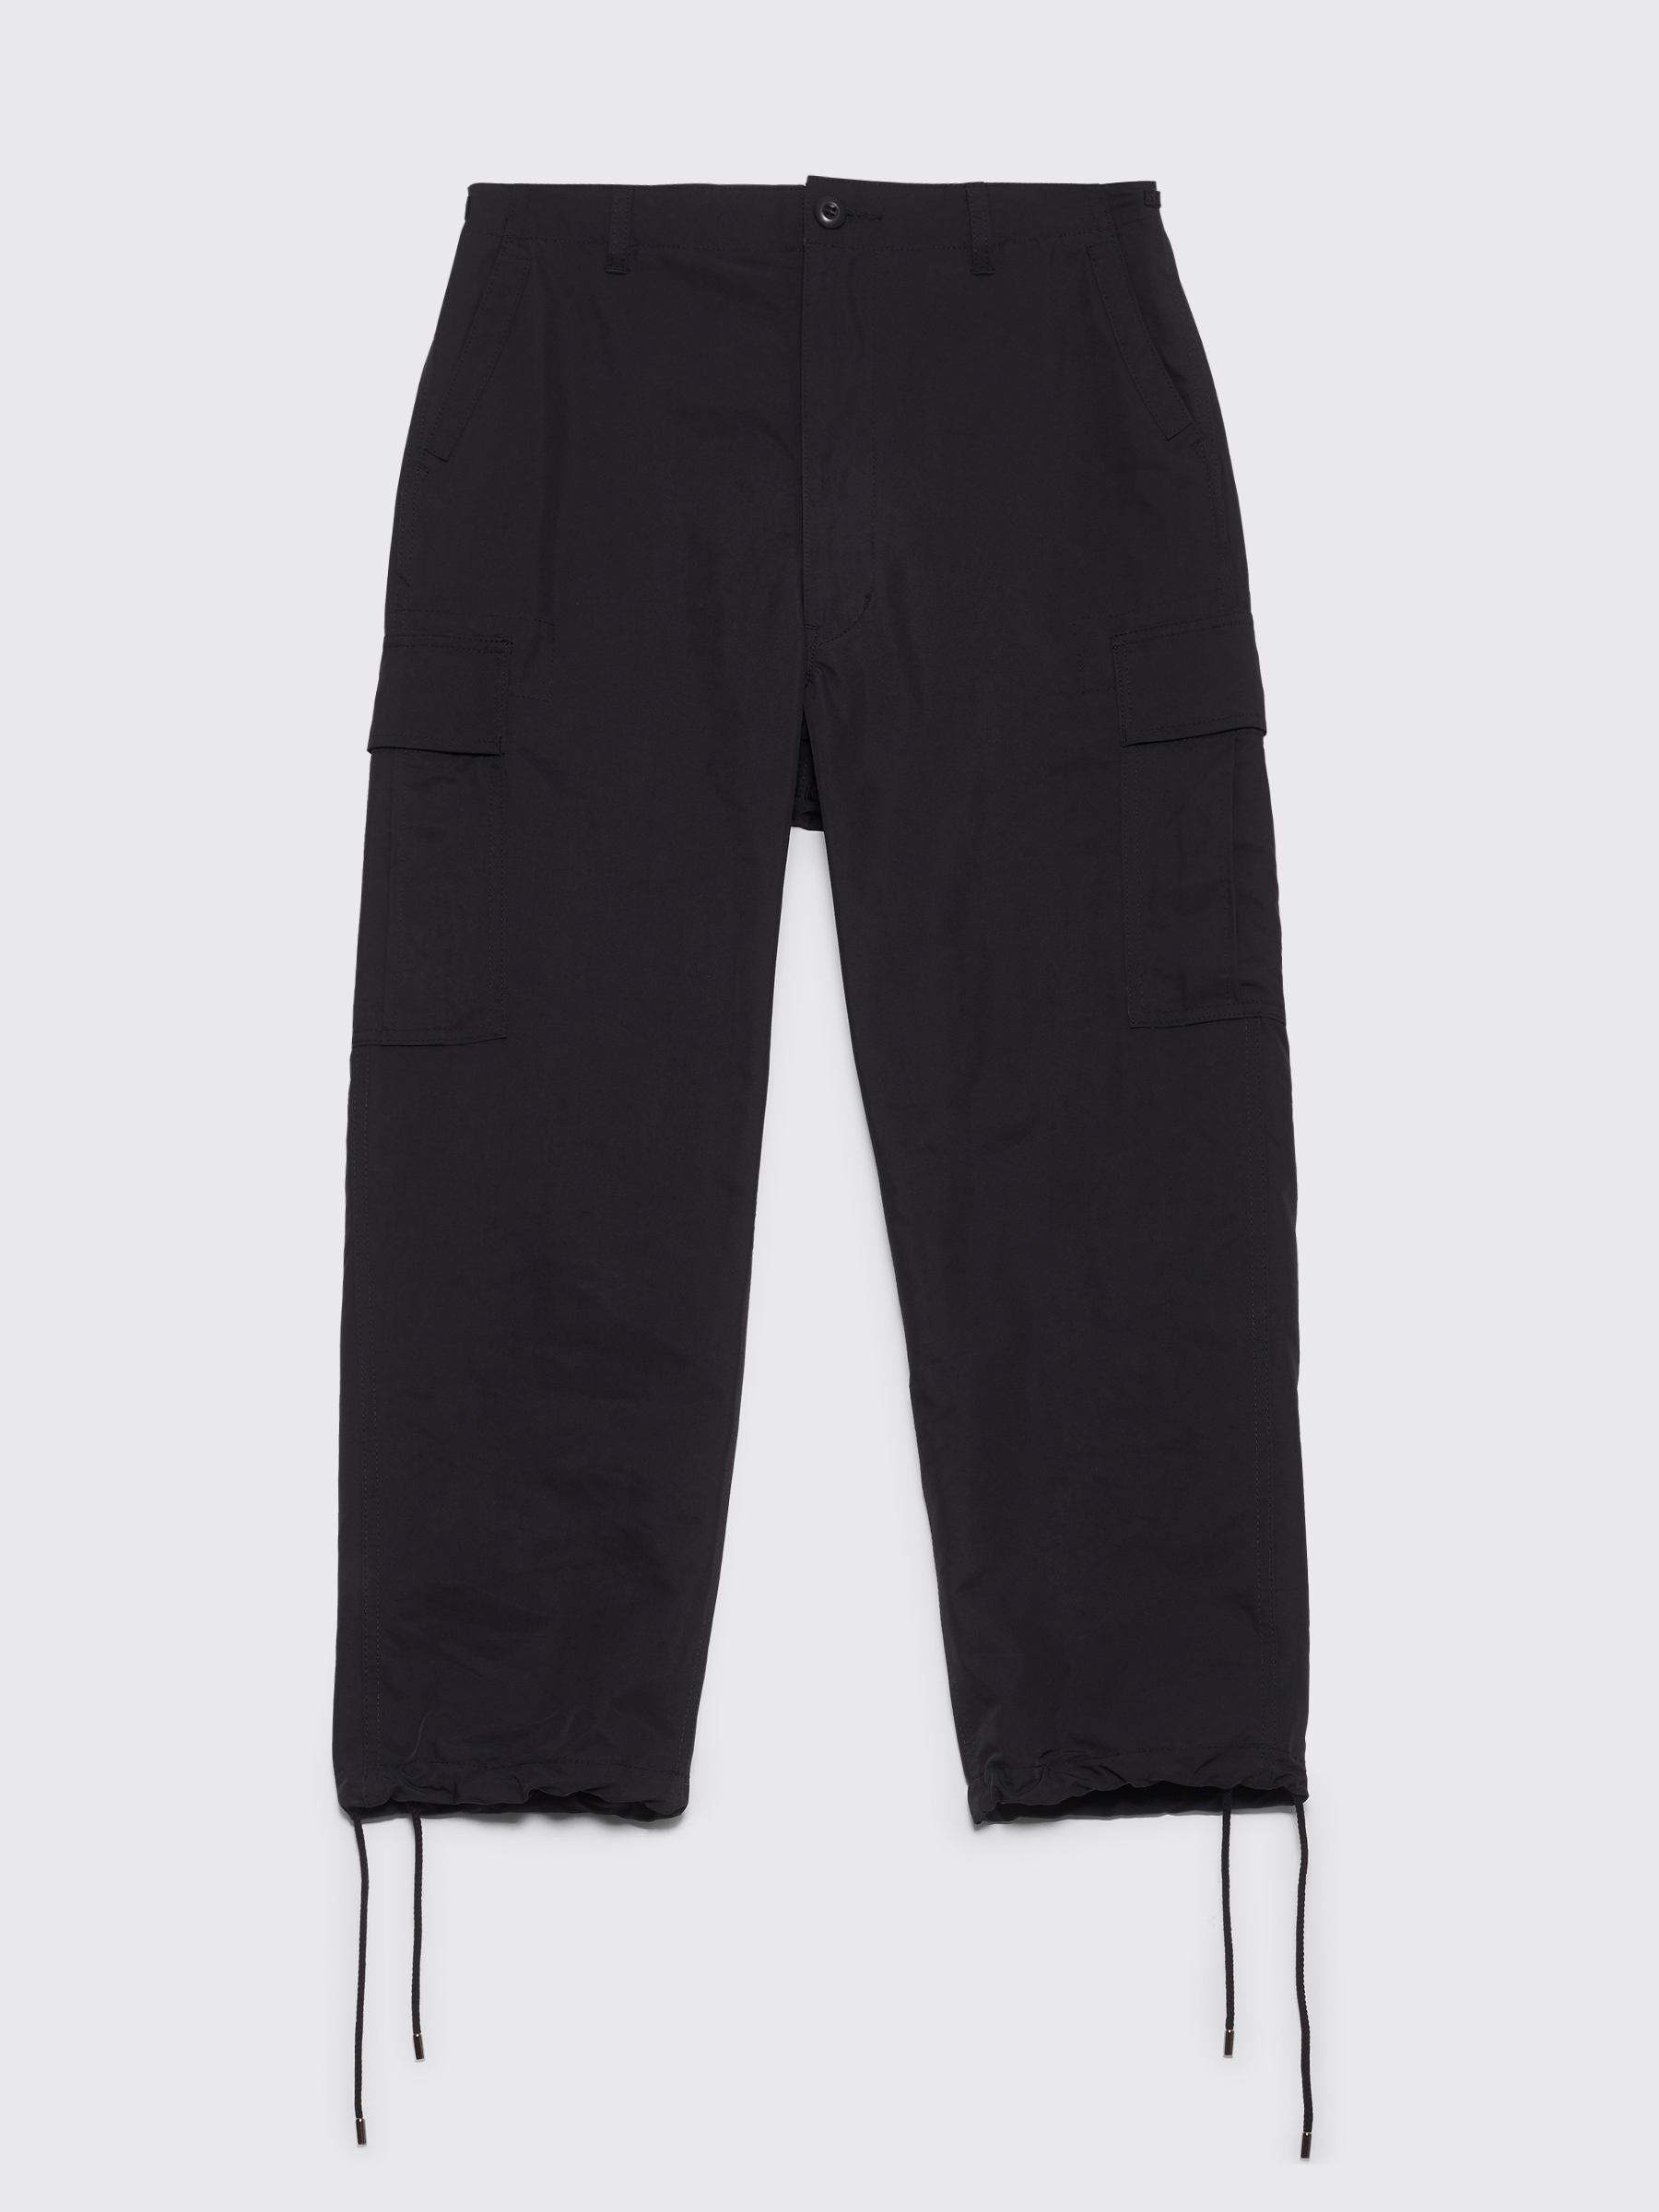 huge selection of 38bf1 e4ca1 Très Bien - Junya Watanabe MAN Cargo Pants Black